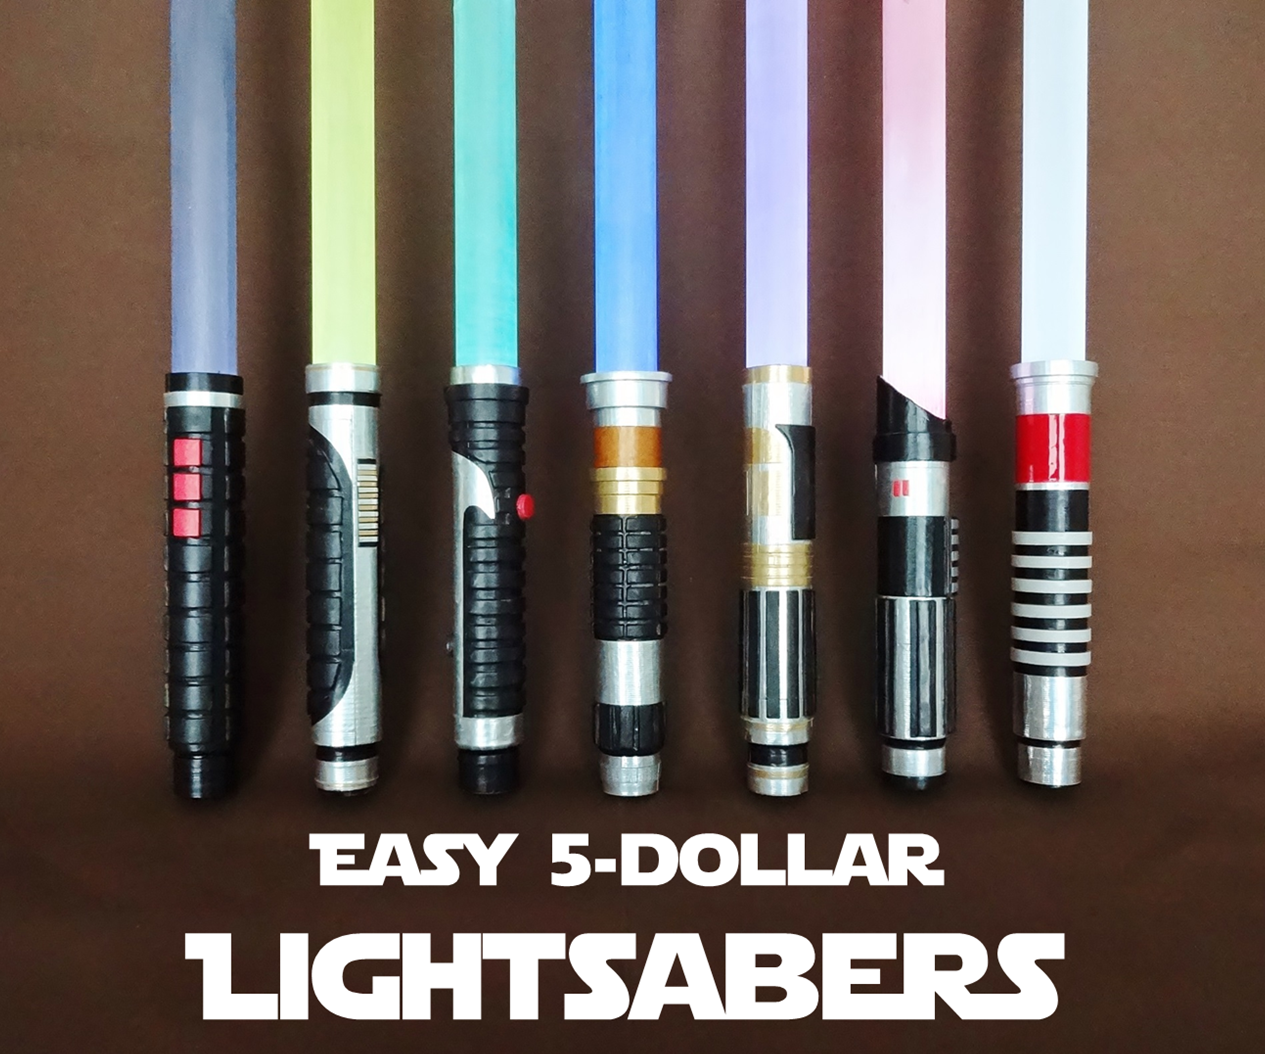 Easy $5 Lightsabers